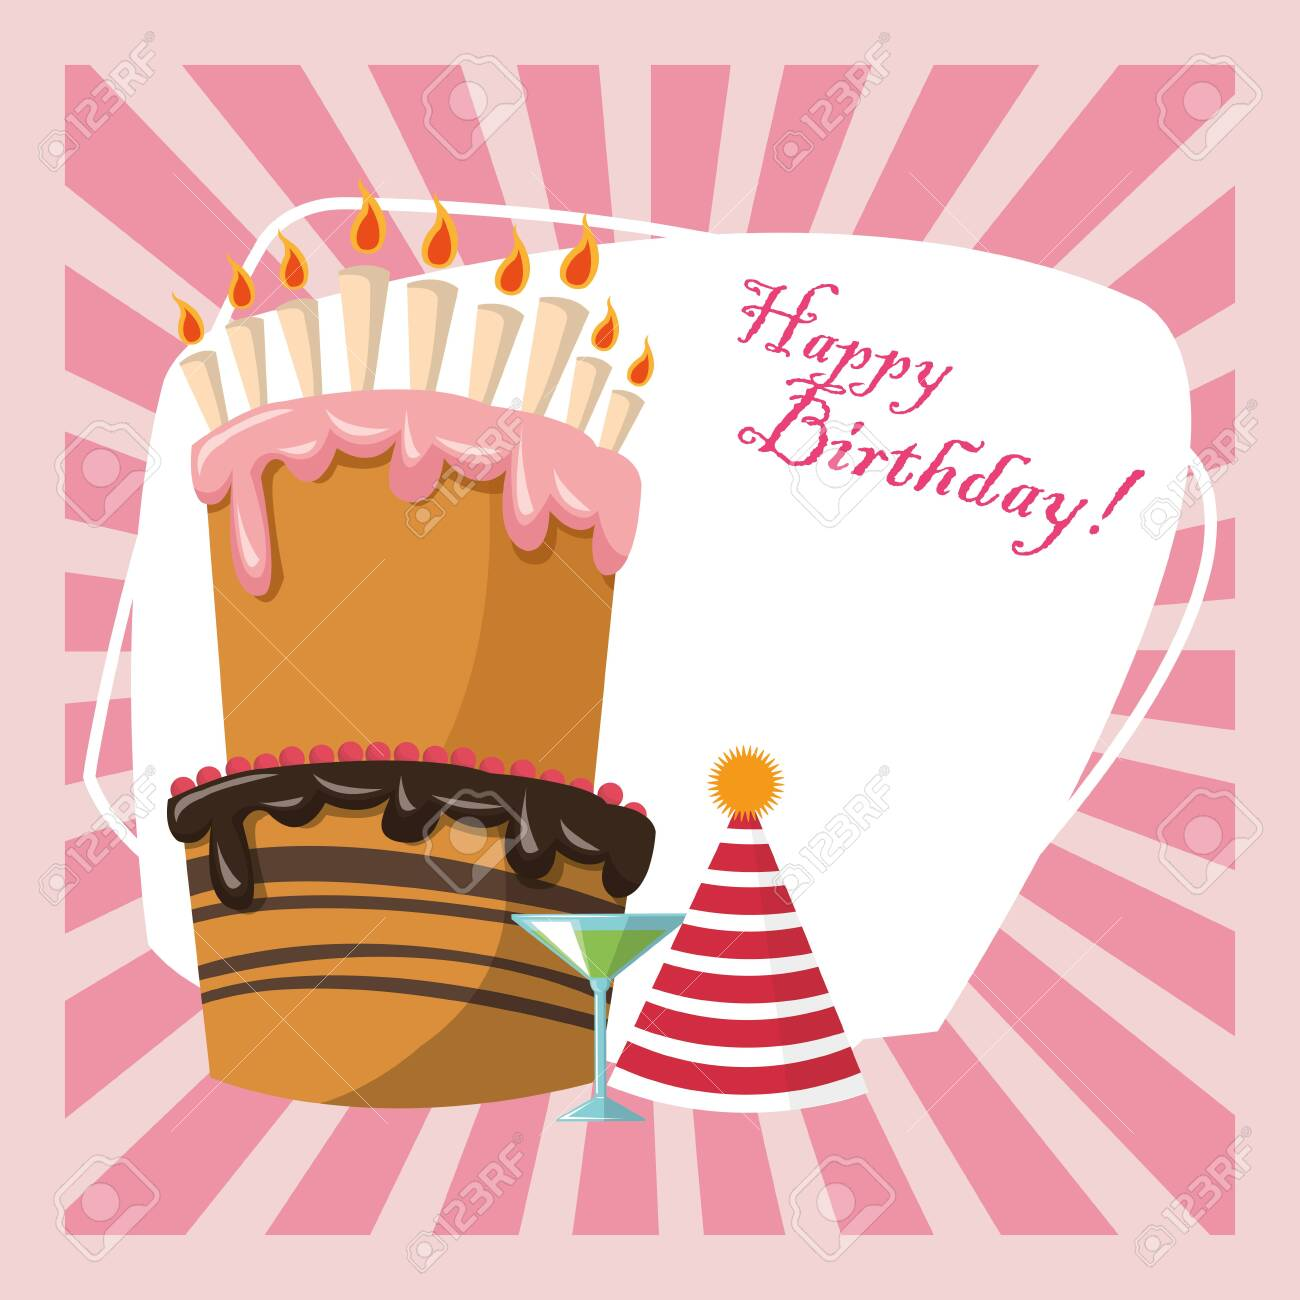 Happy Birthday Celebration Party Sweet Cake Hat And Cocktail Royalty Free Cliparts Vectors And Stock Illustration Image 139124977